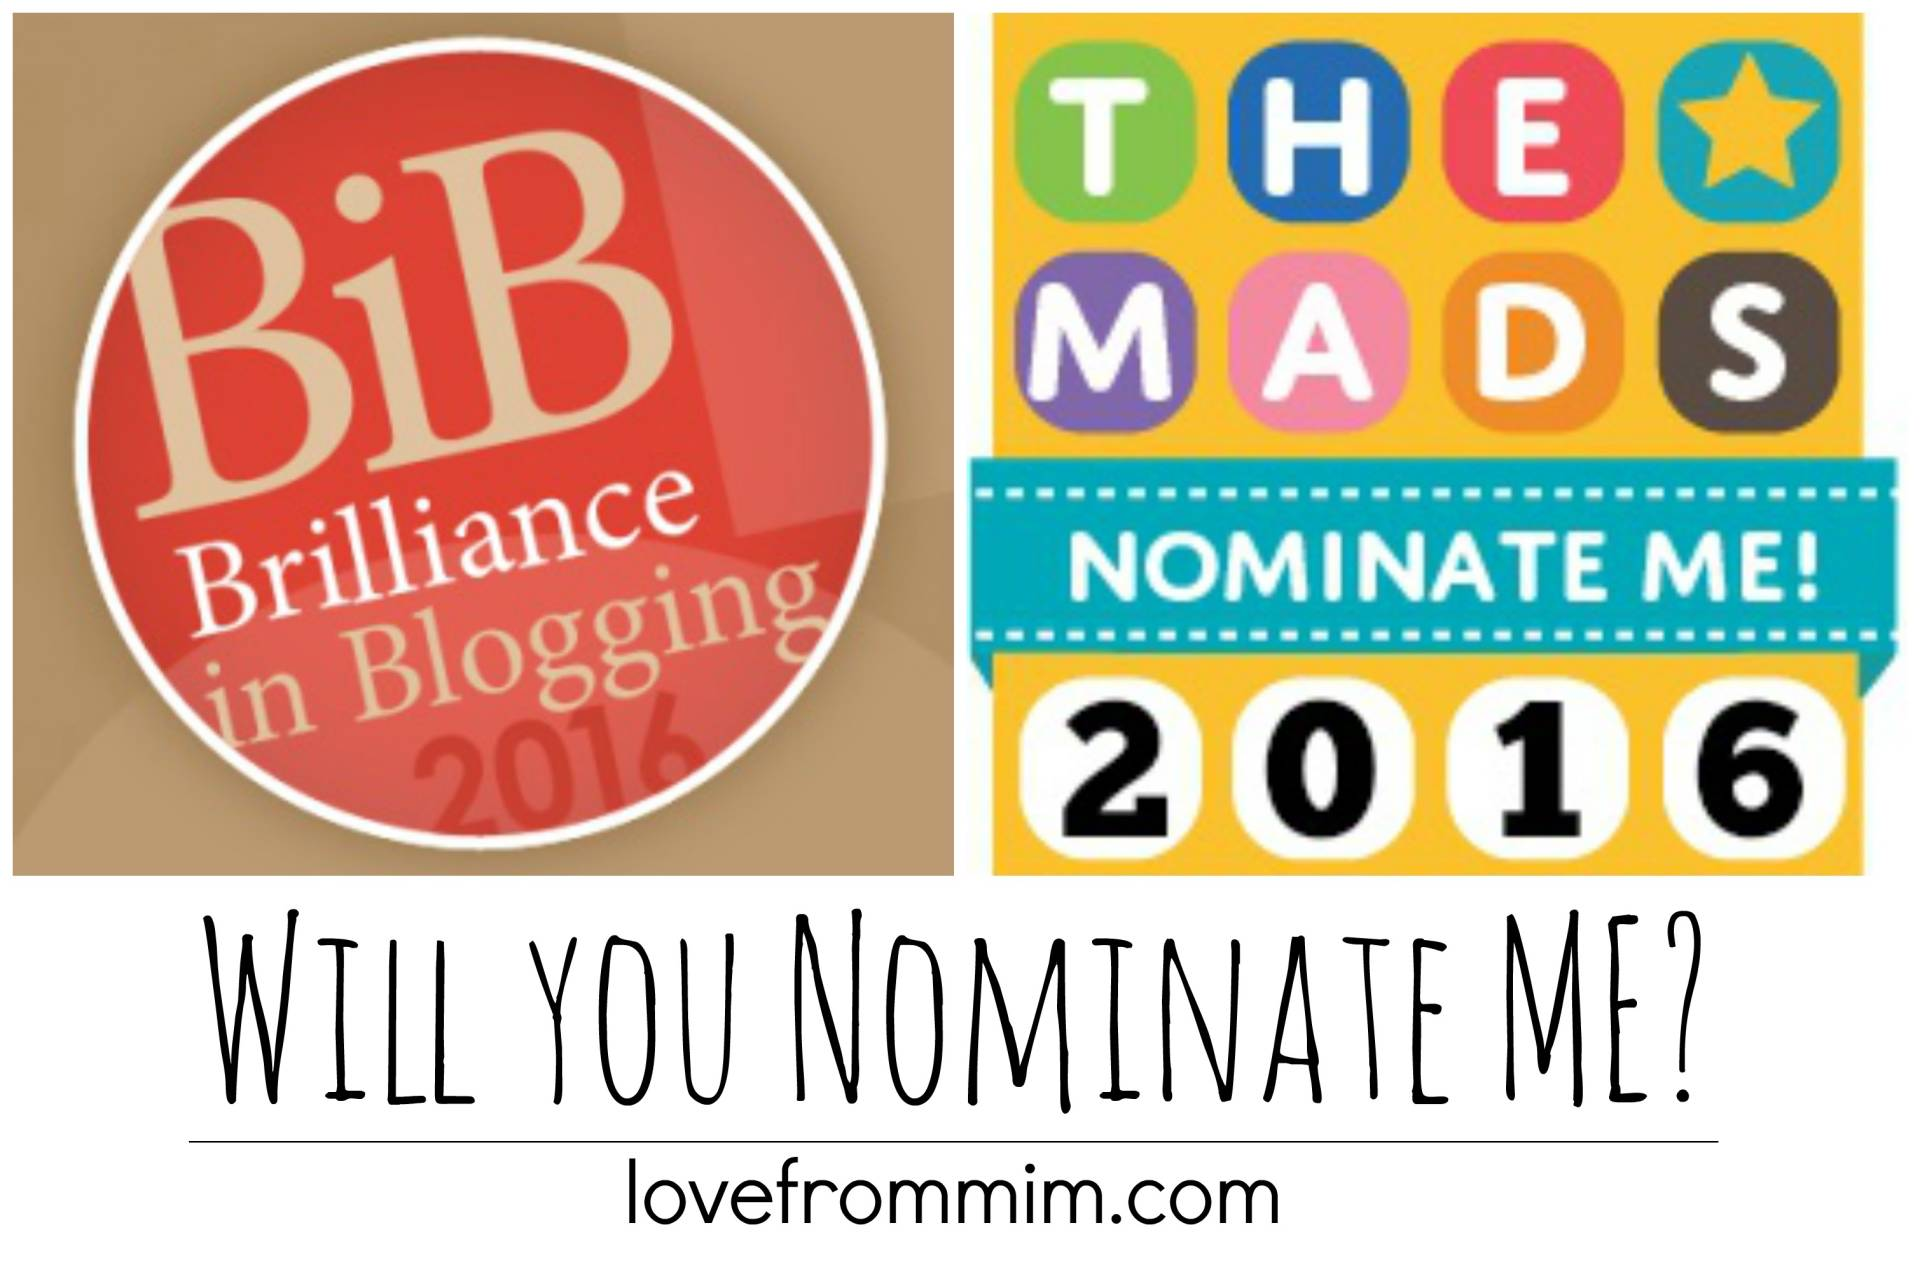 Will you nominate me for a Blogging Award? www.lovefrommim.com Blogger Awards BritMums BIBs Awards Tots100 MAD Awards 2016